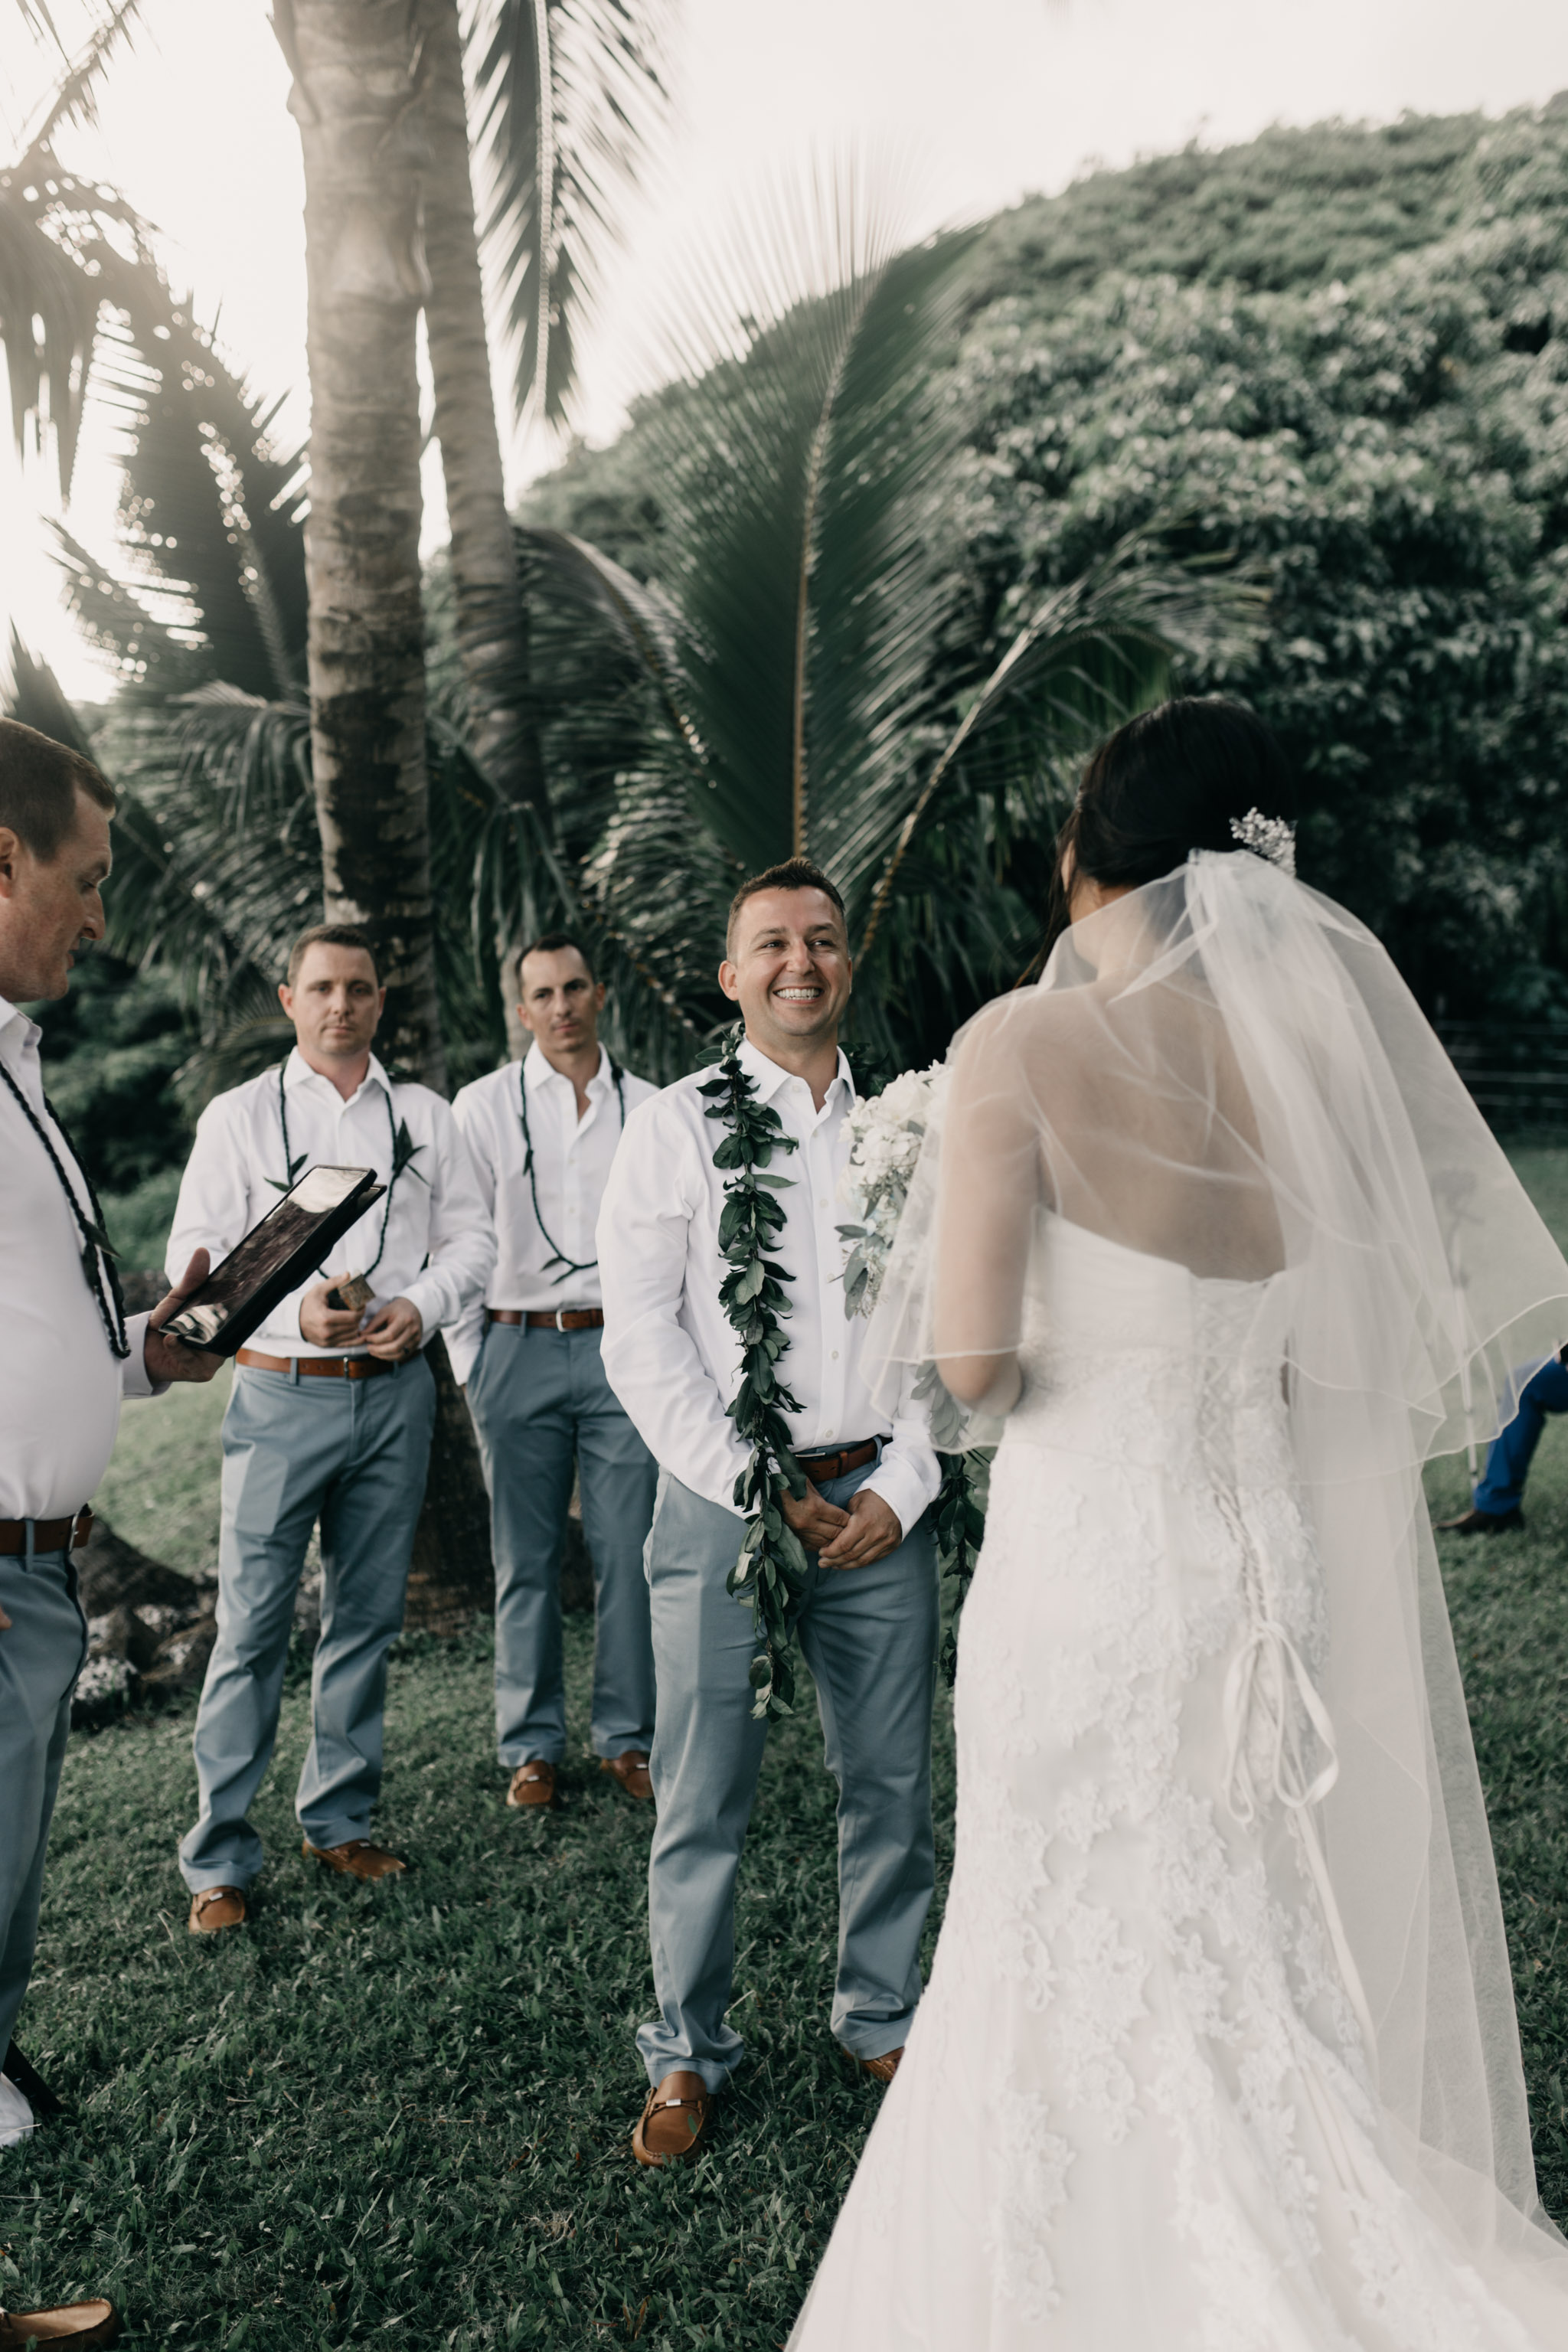 Wedding Ceremony at Kualoa Ranch Paliku Gardens. Photography by Hawaii wedding photographer Desiree Leilani